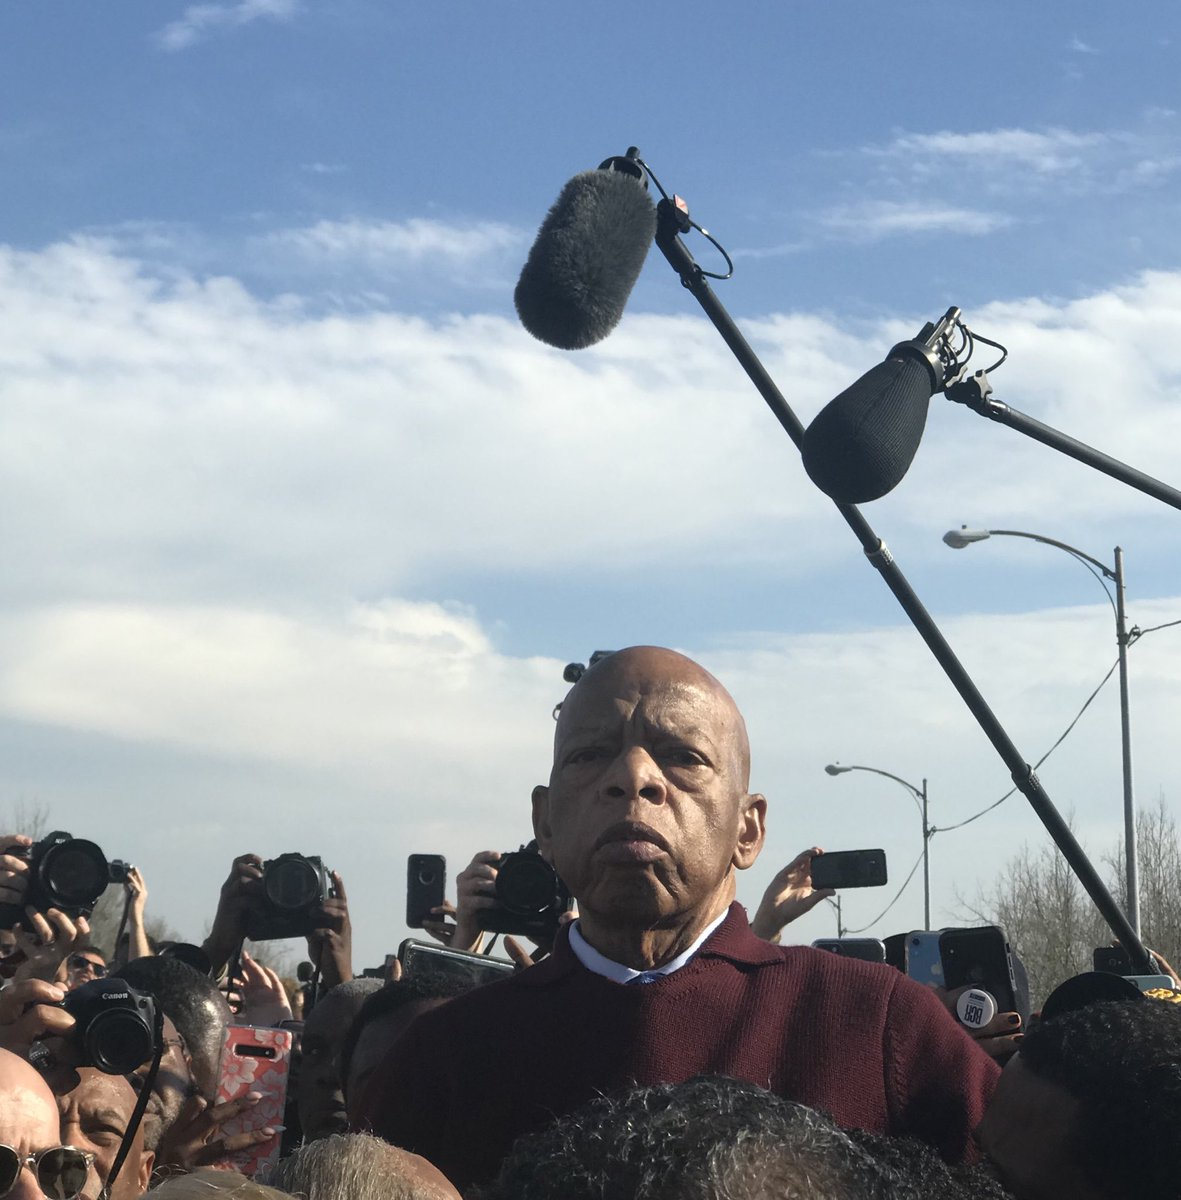 One year ago today, was honored to join fellow voting rights advocates in 55th march across bridge in Selma. An ailing John Lewis suddenly appeared at top of bridge, urged us to fight on & essentially said goodbye. Will treasure this forever. #Selma56